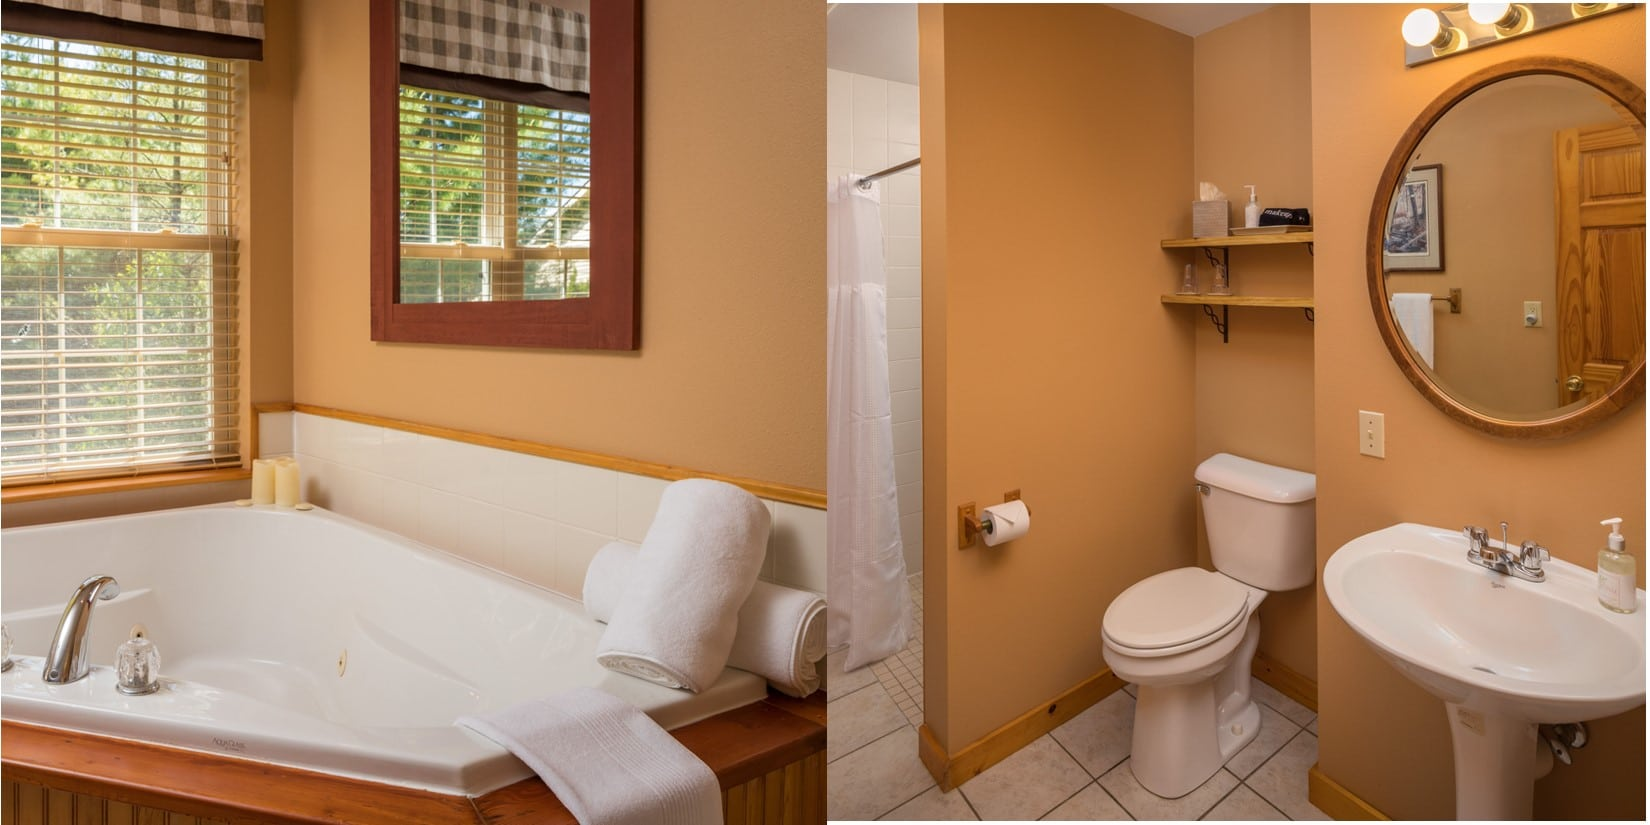 split picture with whirlpool tub on left and bathroom on right